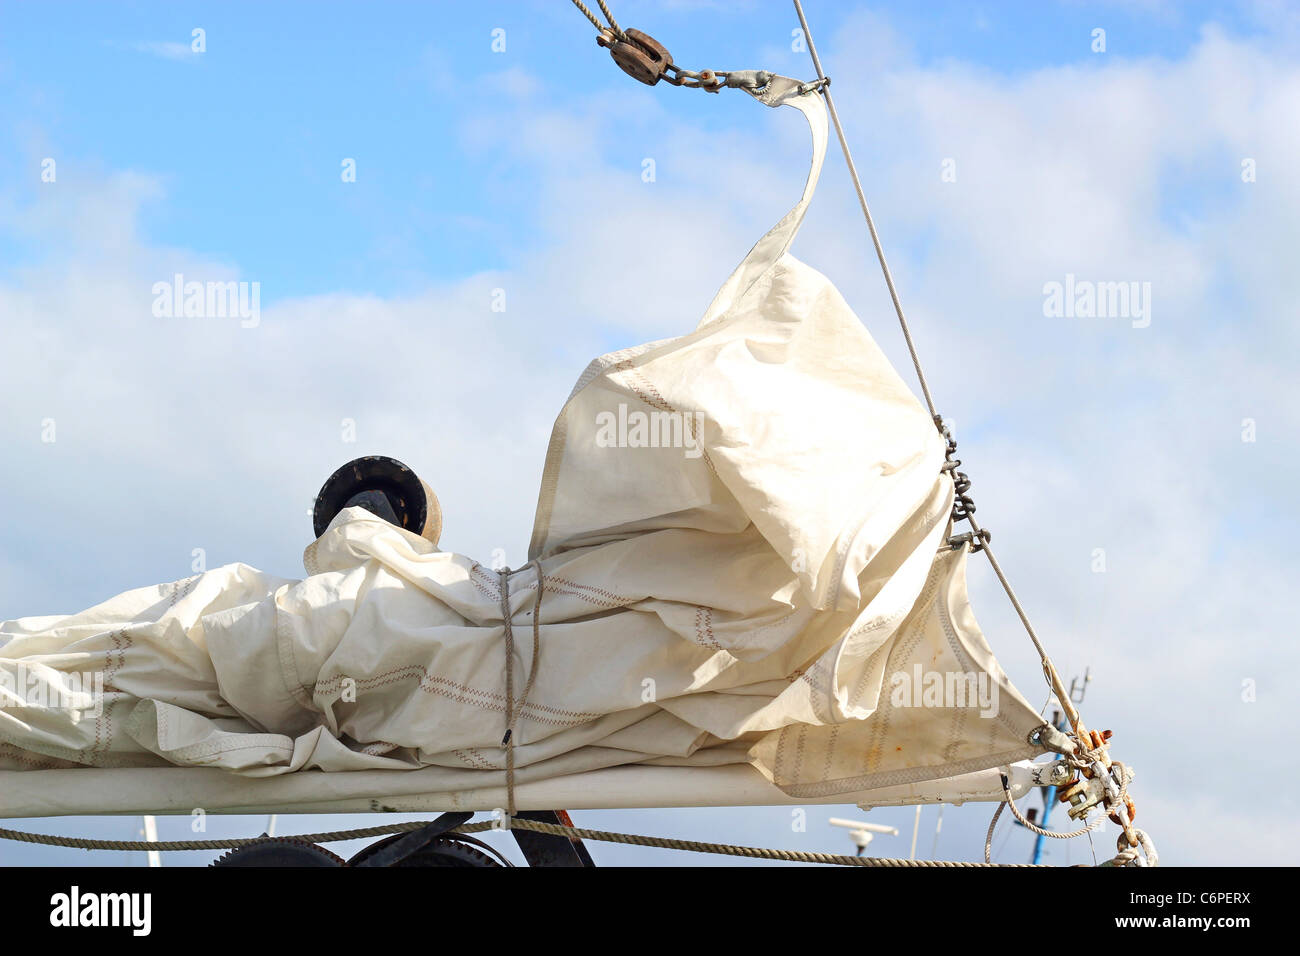 White sail being furled on a sailboat at dock in the harbor with bright blue sky and clouds in the background. - Stock Image